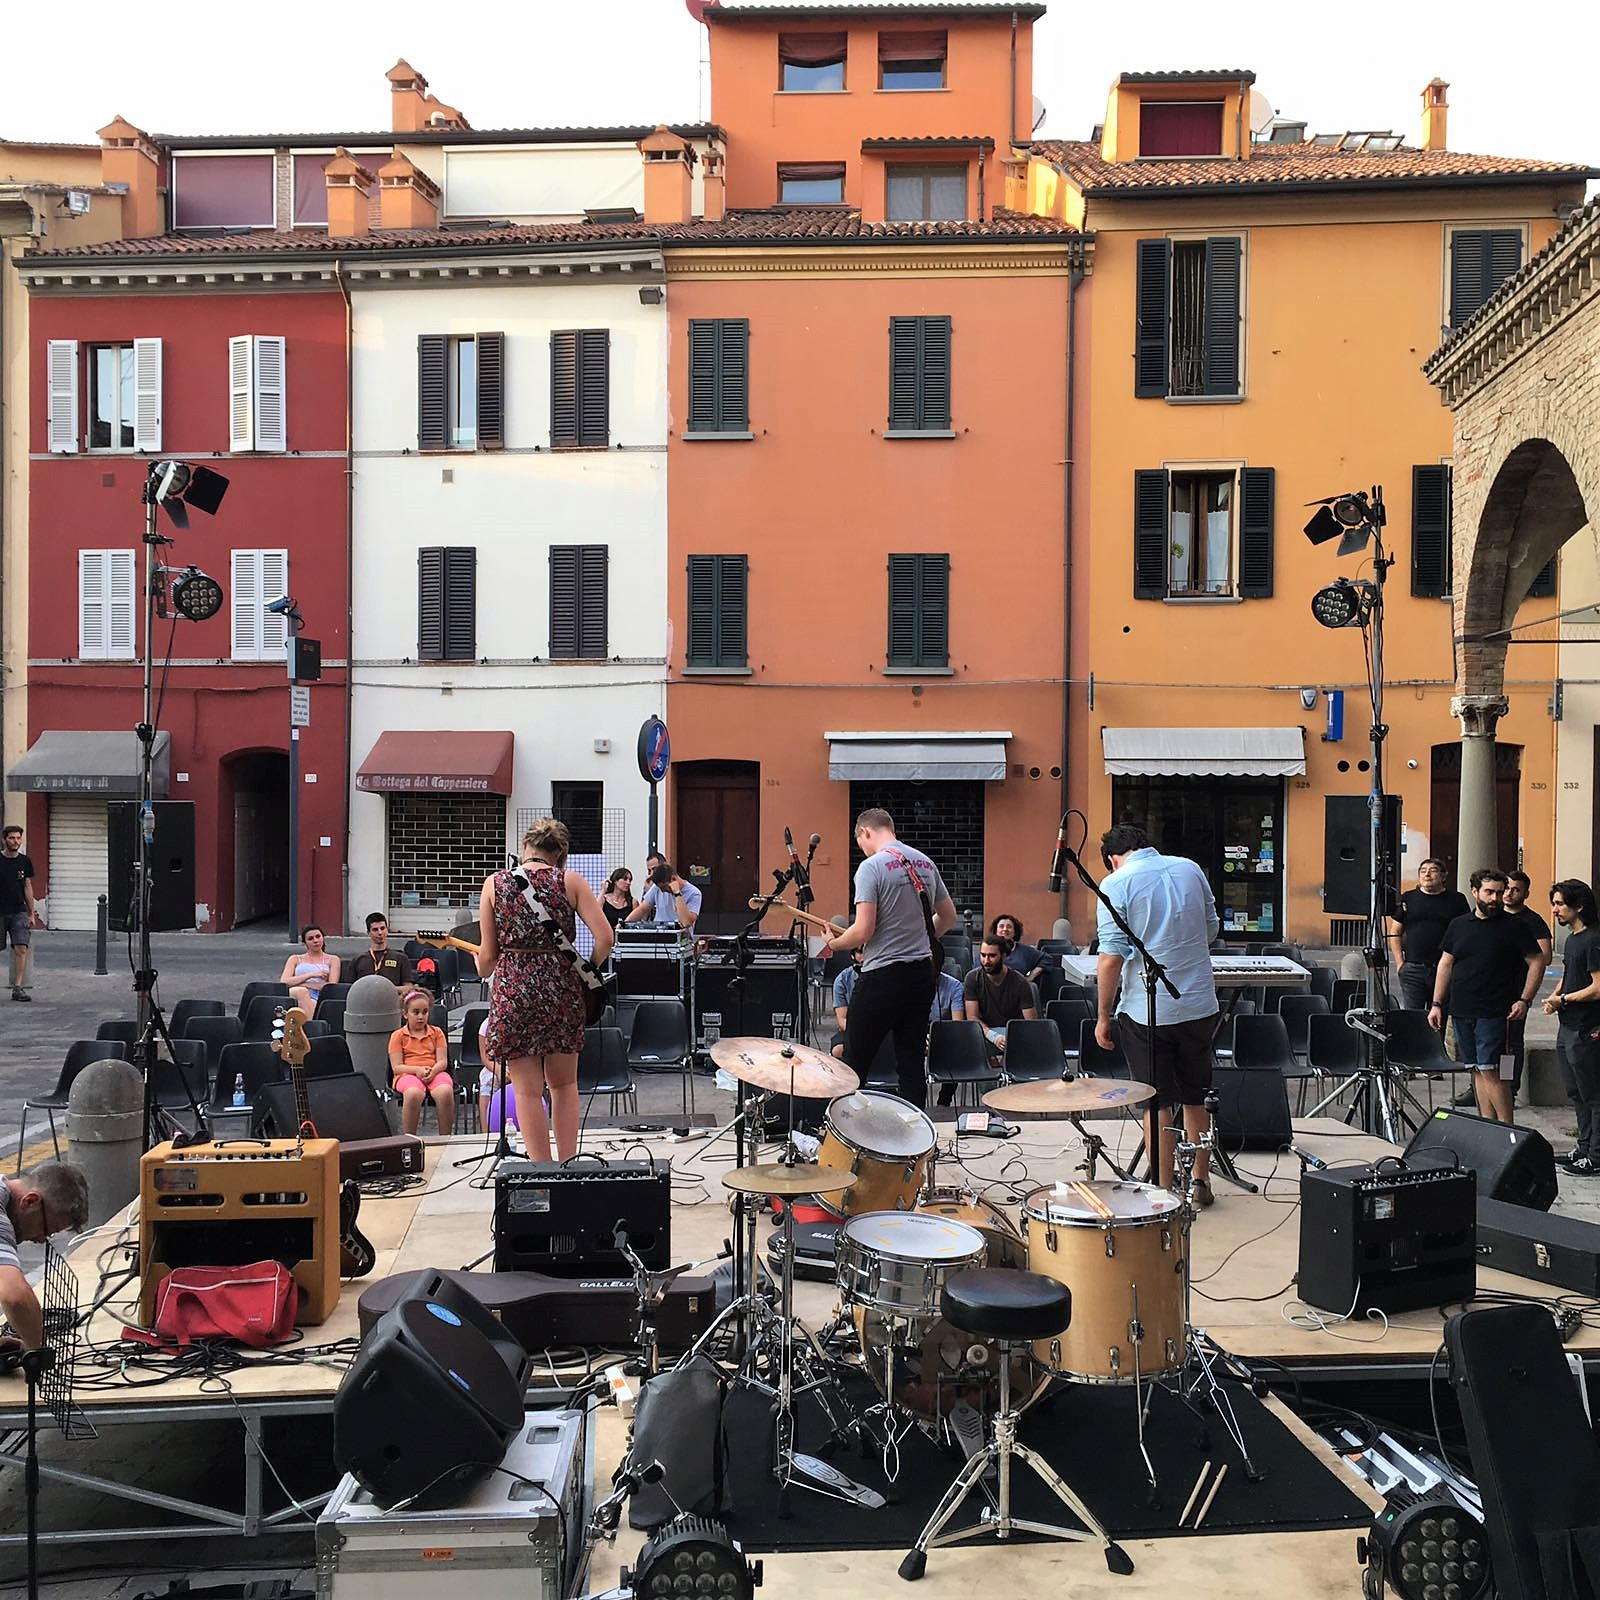 Imola Square | Imola in Musica | Backpacking with Bacon